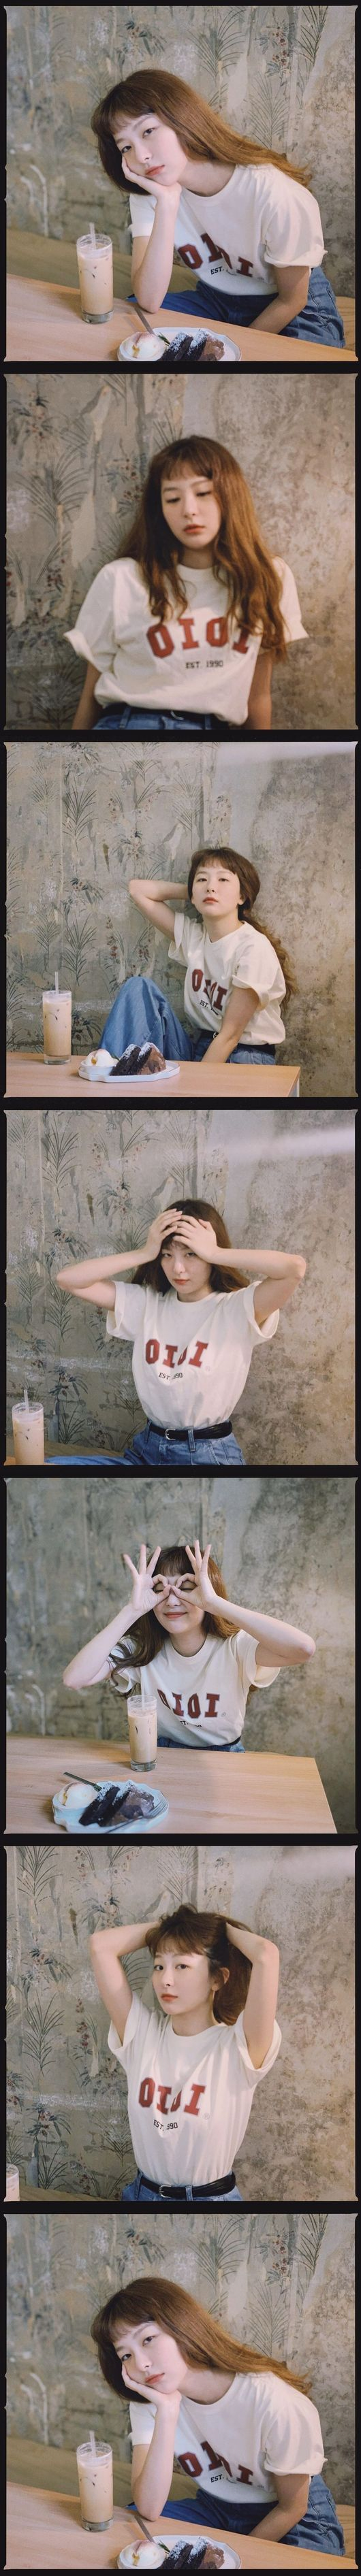 Red Velvet Seulgi has revealed her innocent current status.On the afternoon of the 27th, Red Velvet Seulgi posted several photos with emotico.In the photo, Seulgi matched denim with a white shirt to complete a comfortable look, especially transparent skin and Seven features.Meanwhile, Seulgi recently appeared in the music video of Yunho Yunhos new song Eeny Meeny.The group Red Velvet, which Seulgi belongs to, also released the TVN drama Startup OST Future last October./[Photo] Seulgi InstagramCopyright c Koreas Best Sports Entertainment Professional Media (www. osen.co. kr)